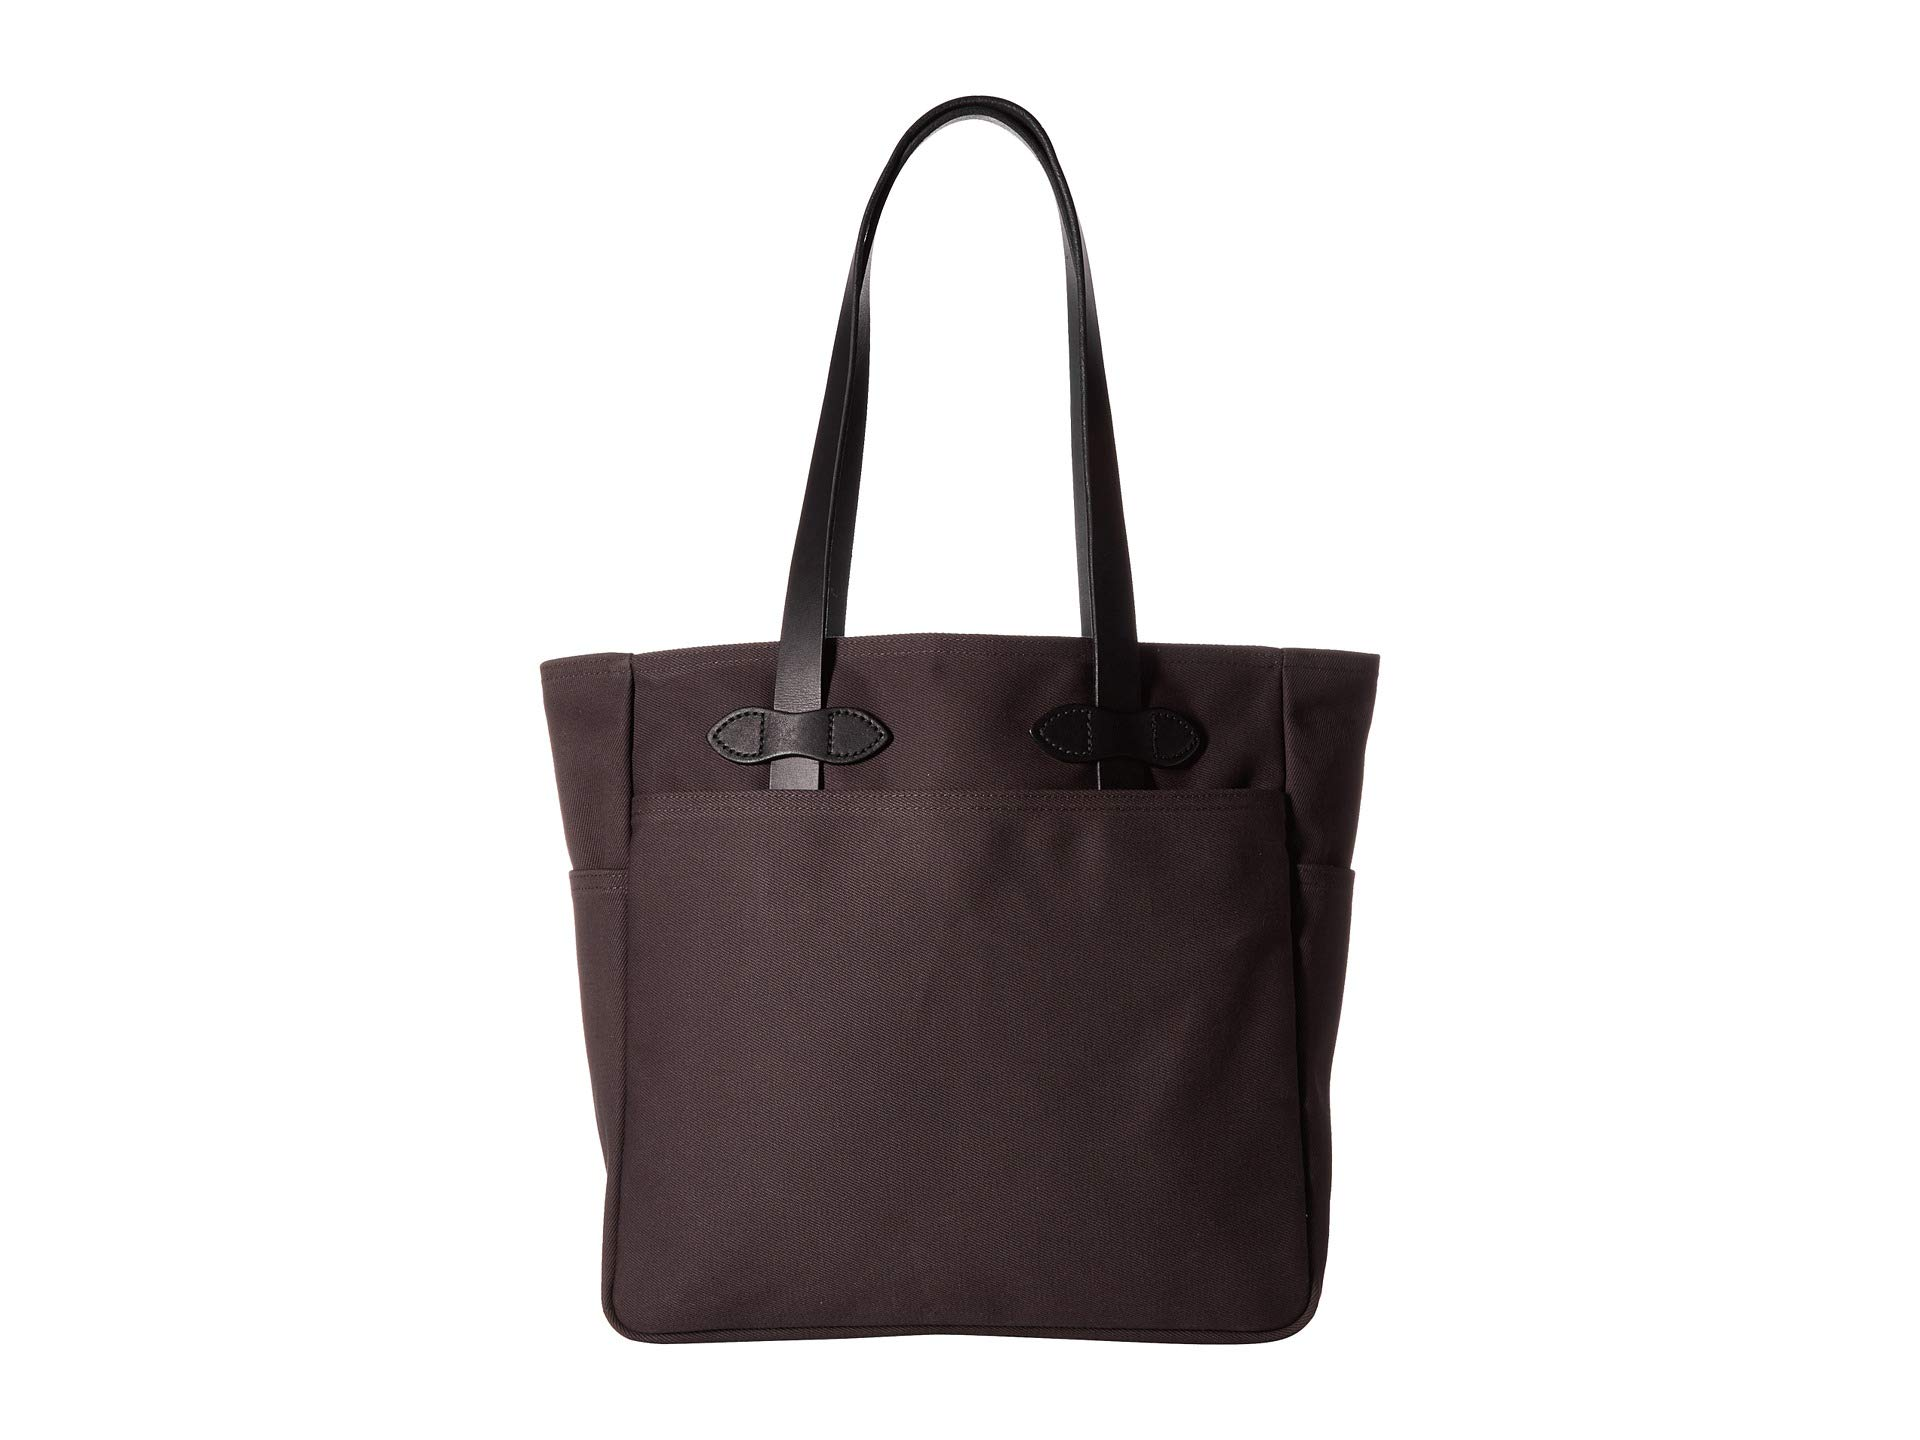 Filson Tote Bag Without Zipper Cinder One Size